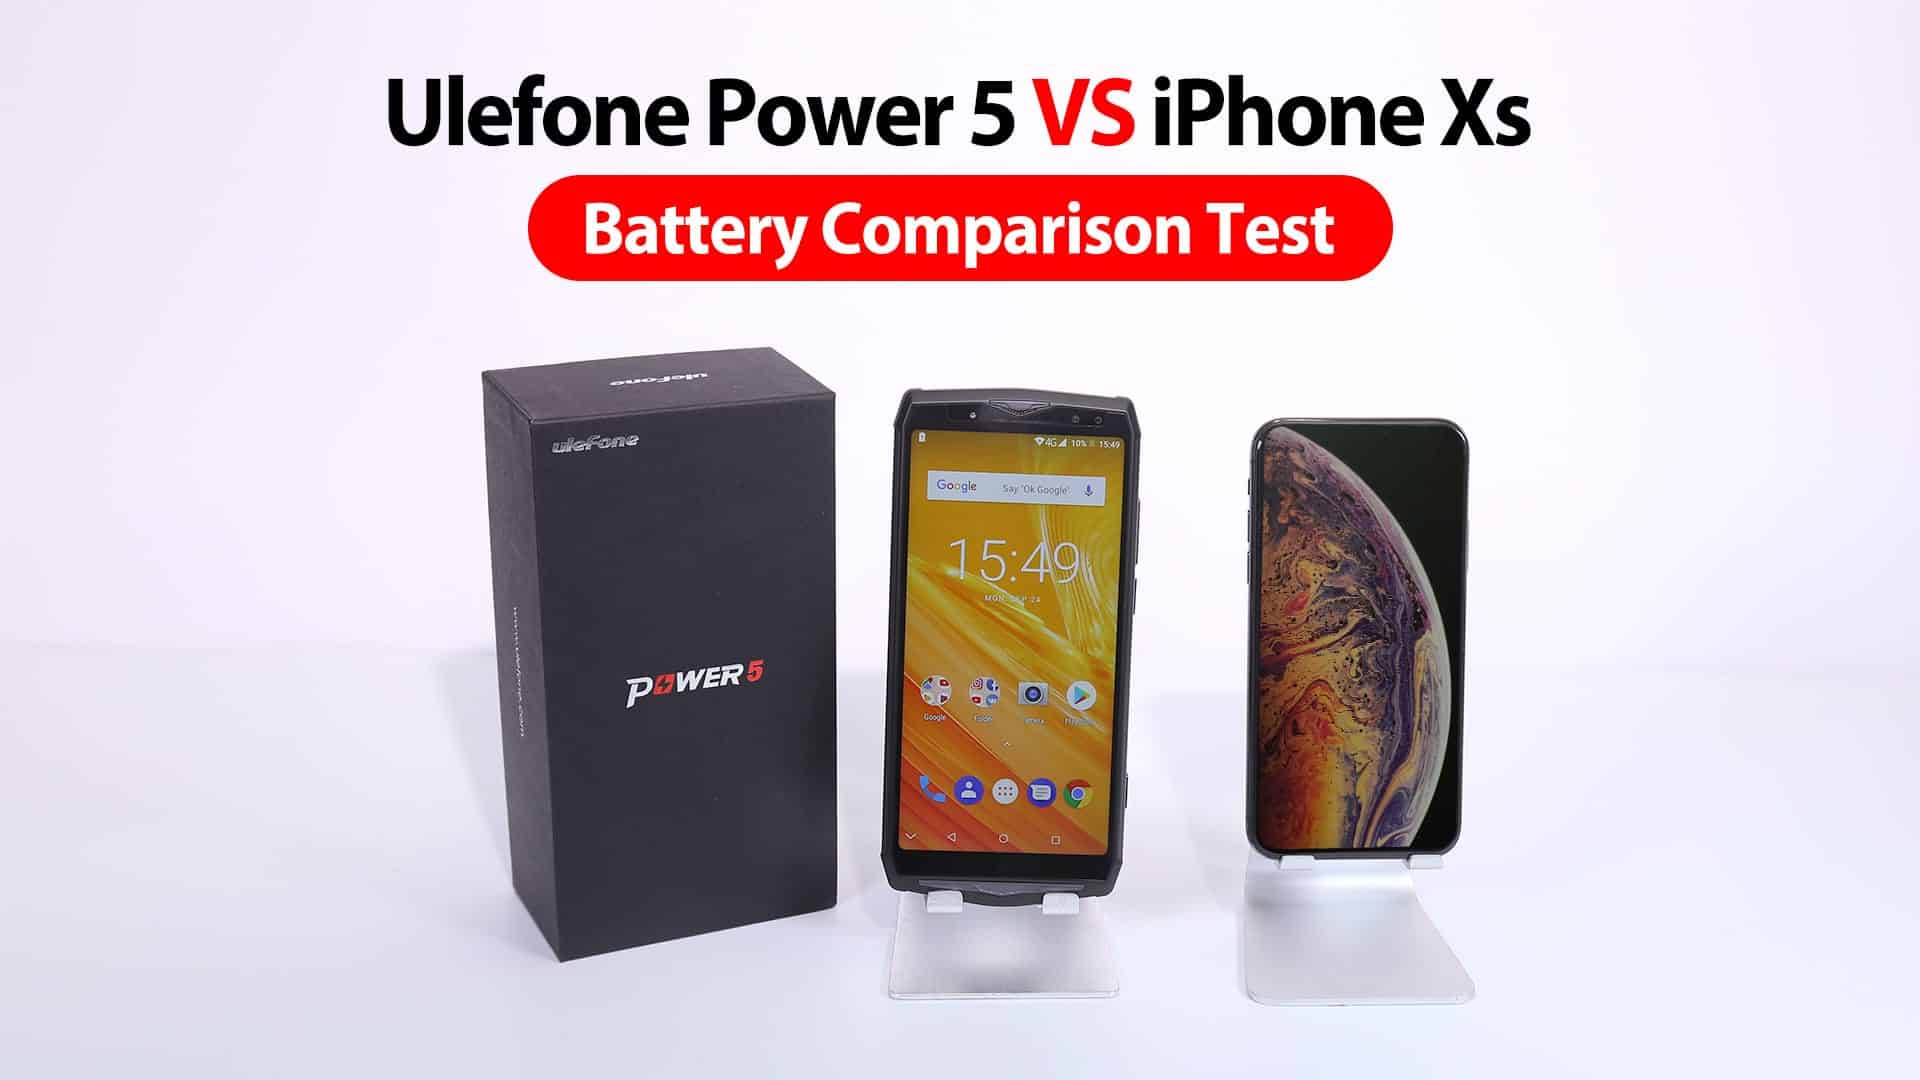 Ulefone Power 5 vs iPhone XS battery 1